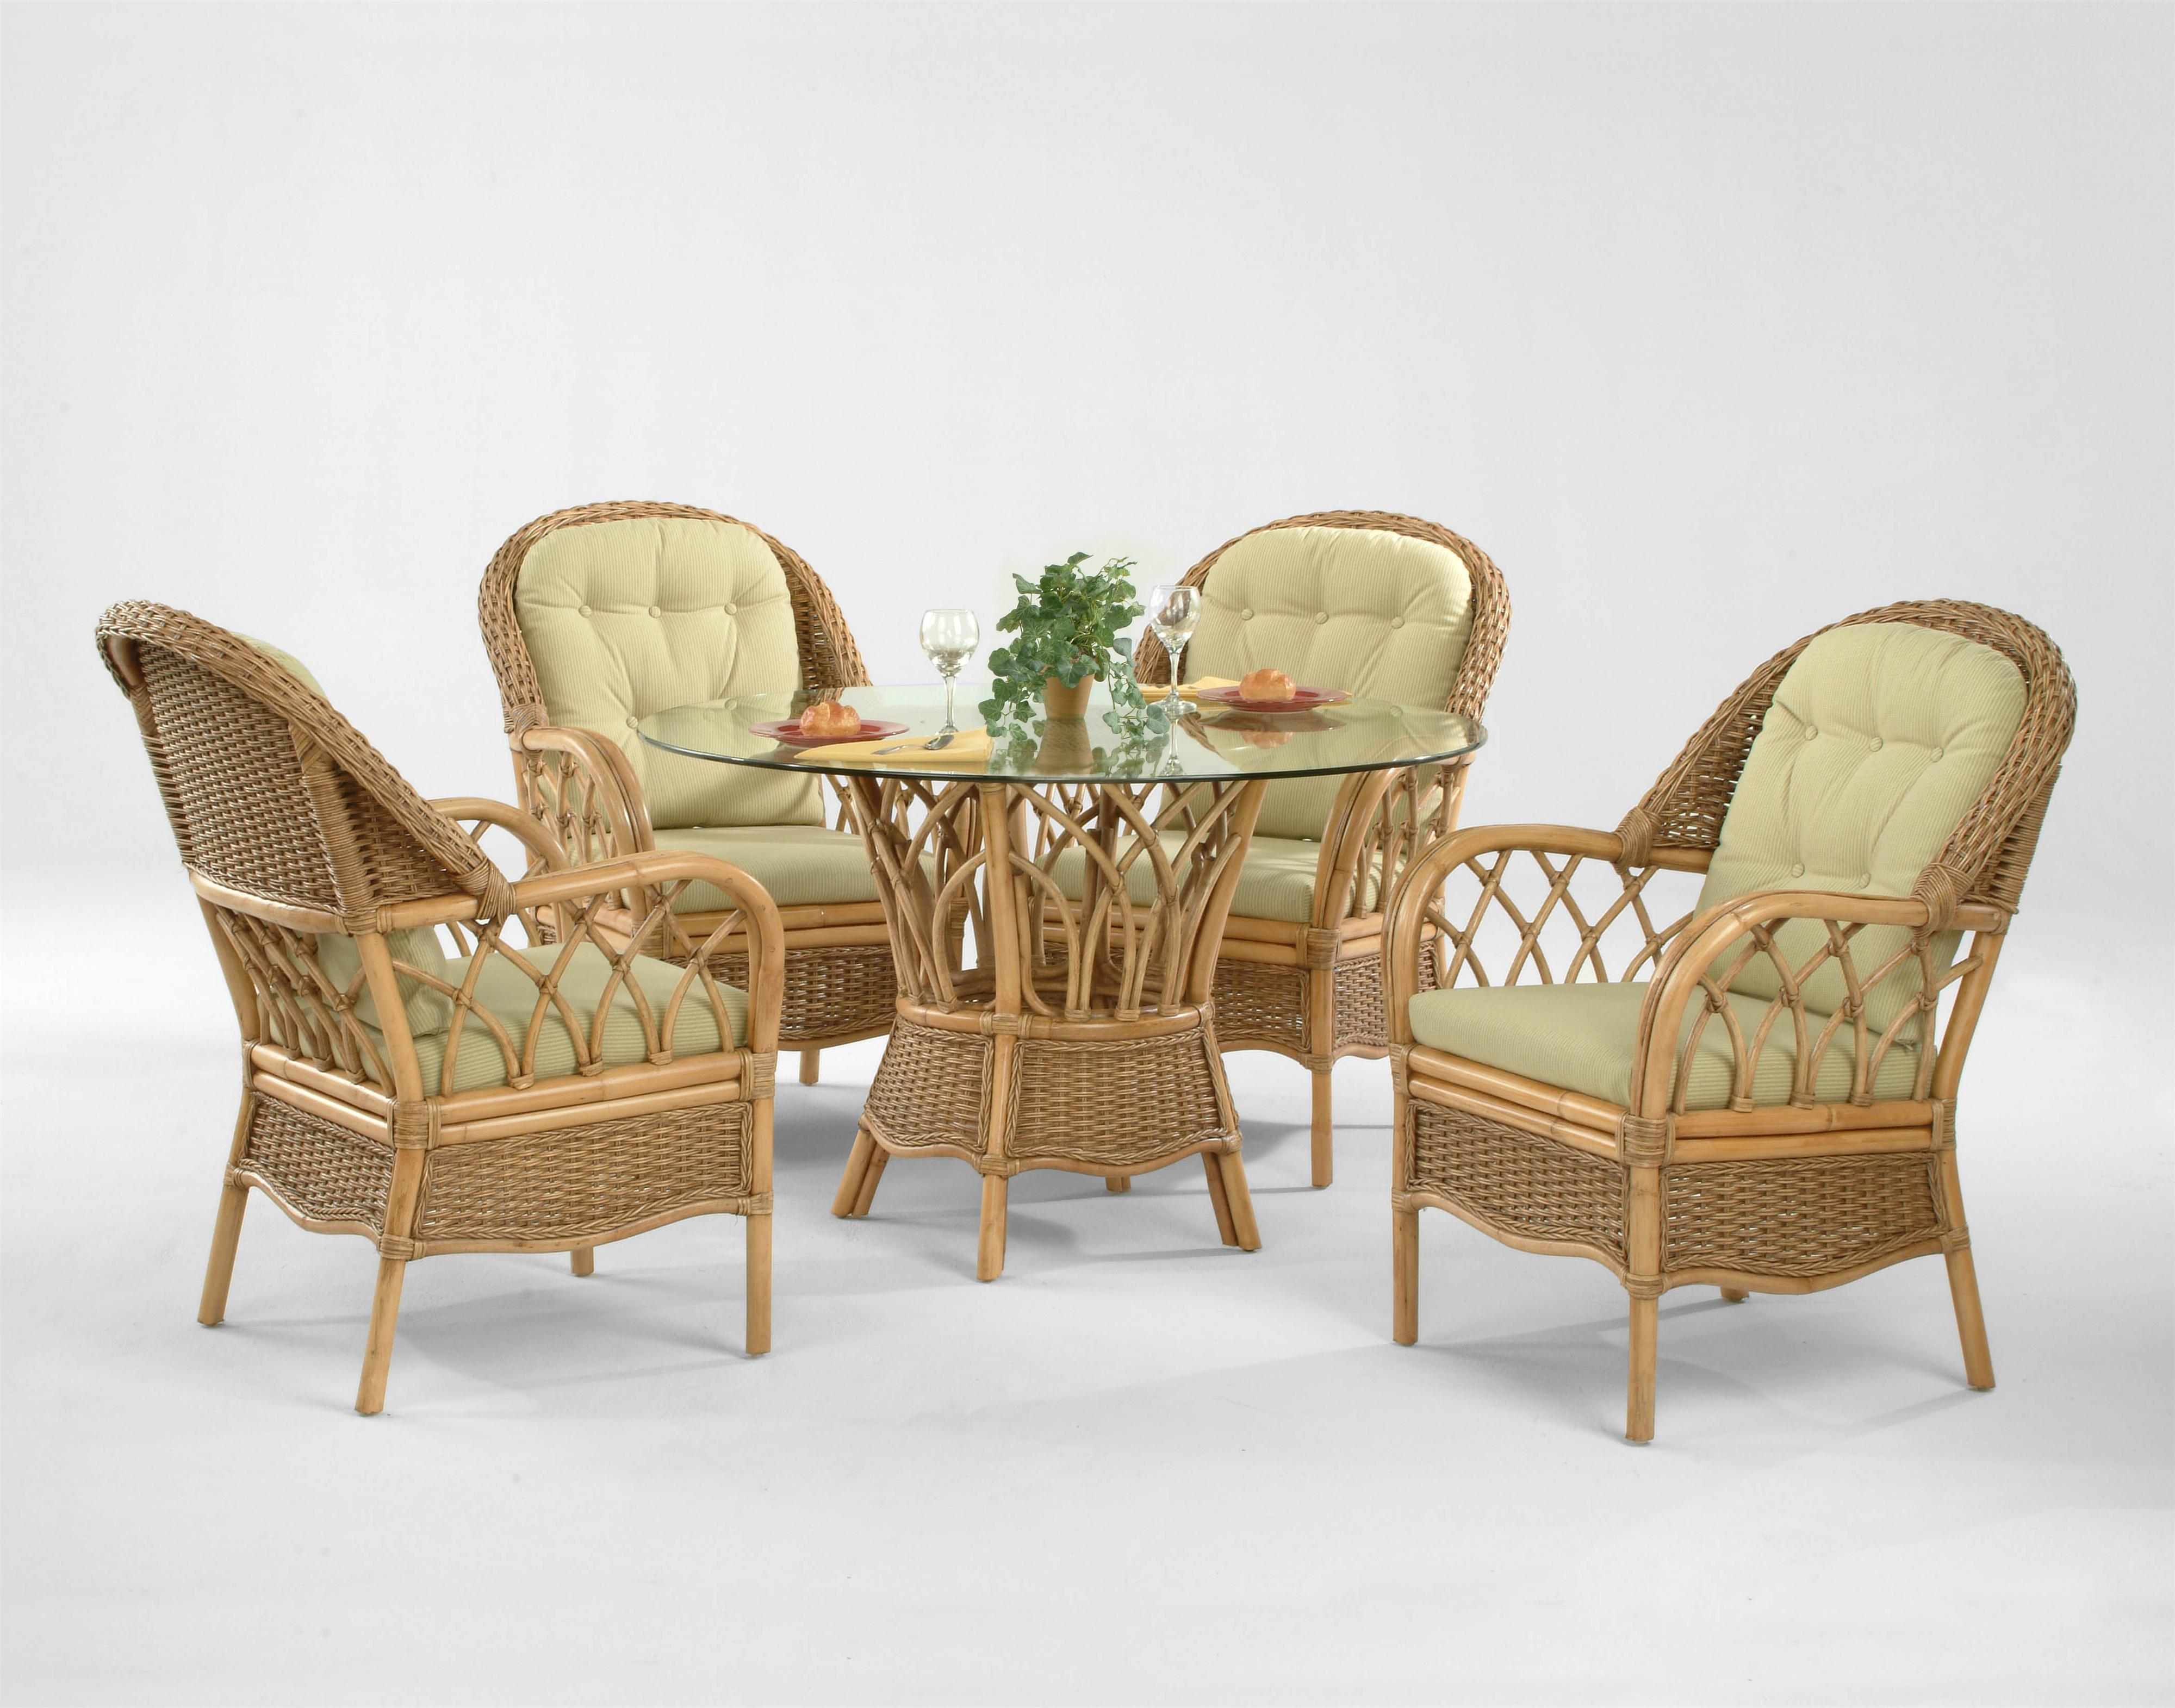 Everglade 5 Piece Dining Set by Braxton Culler at Esprit Decor Home Furnishings